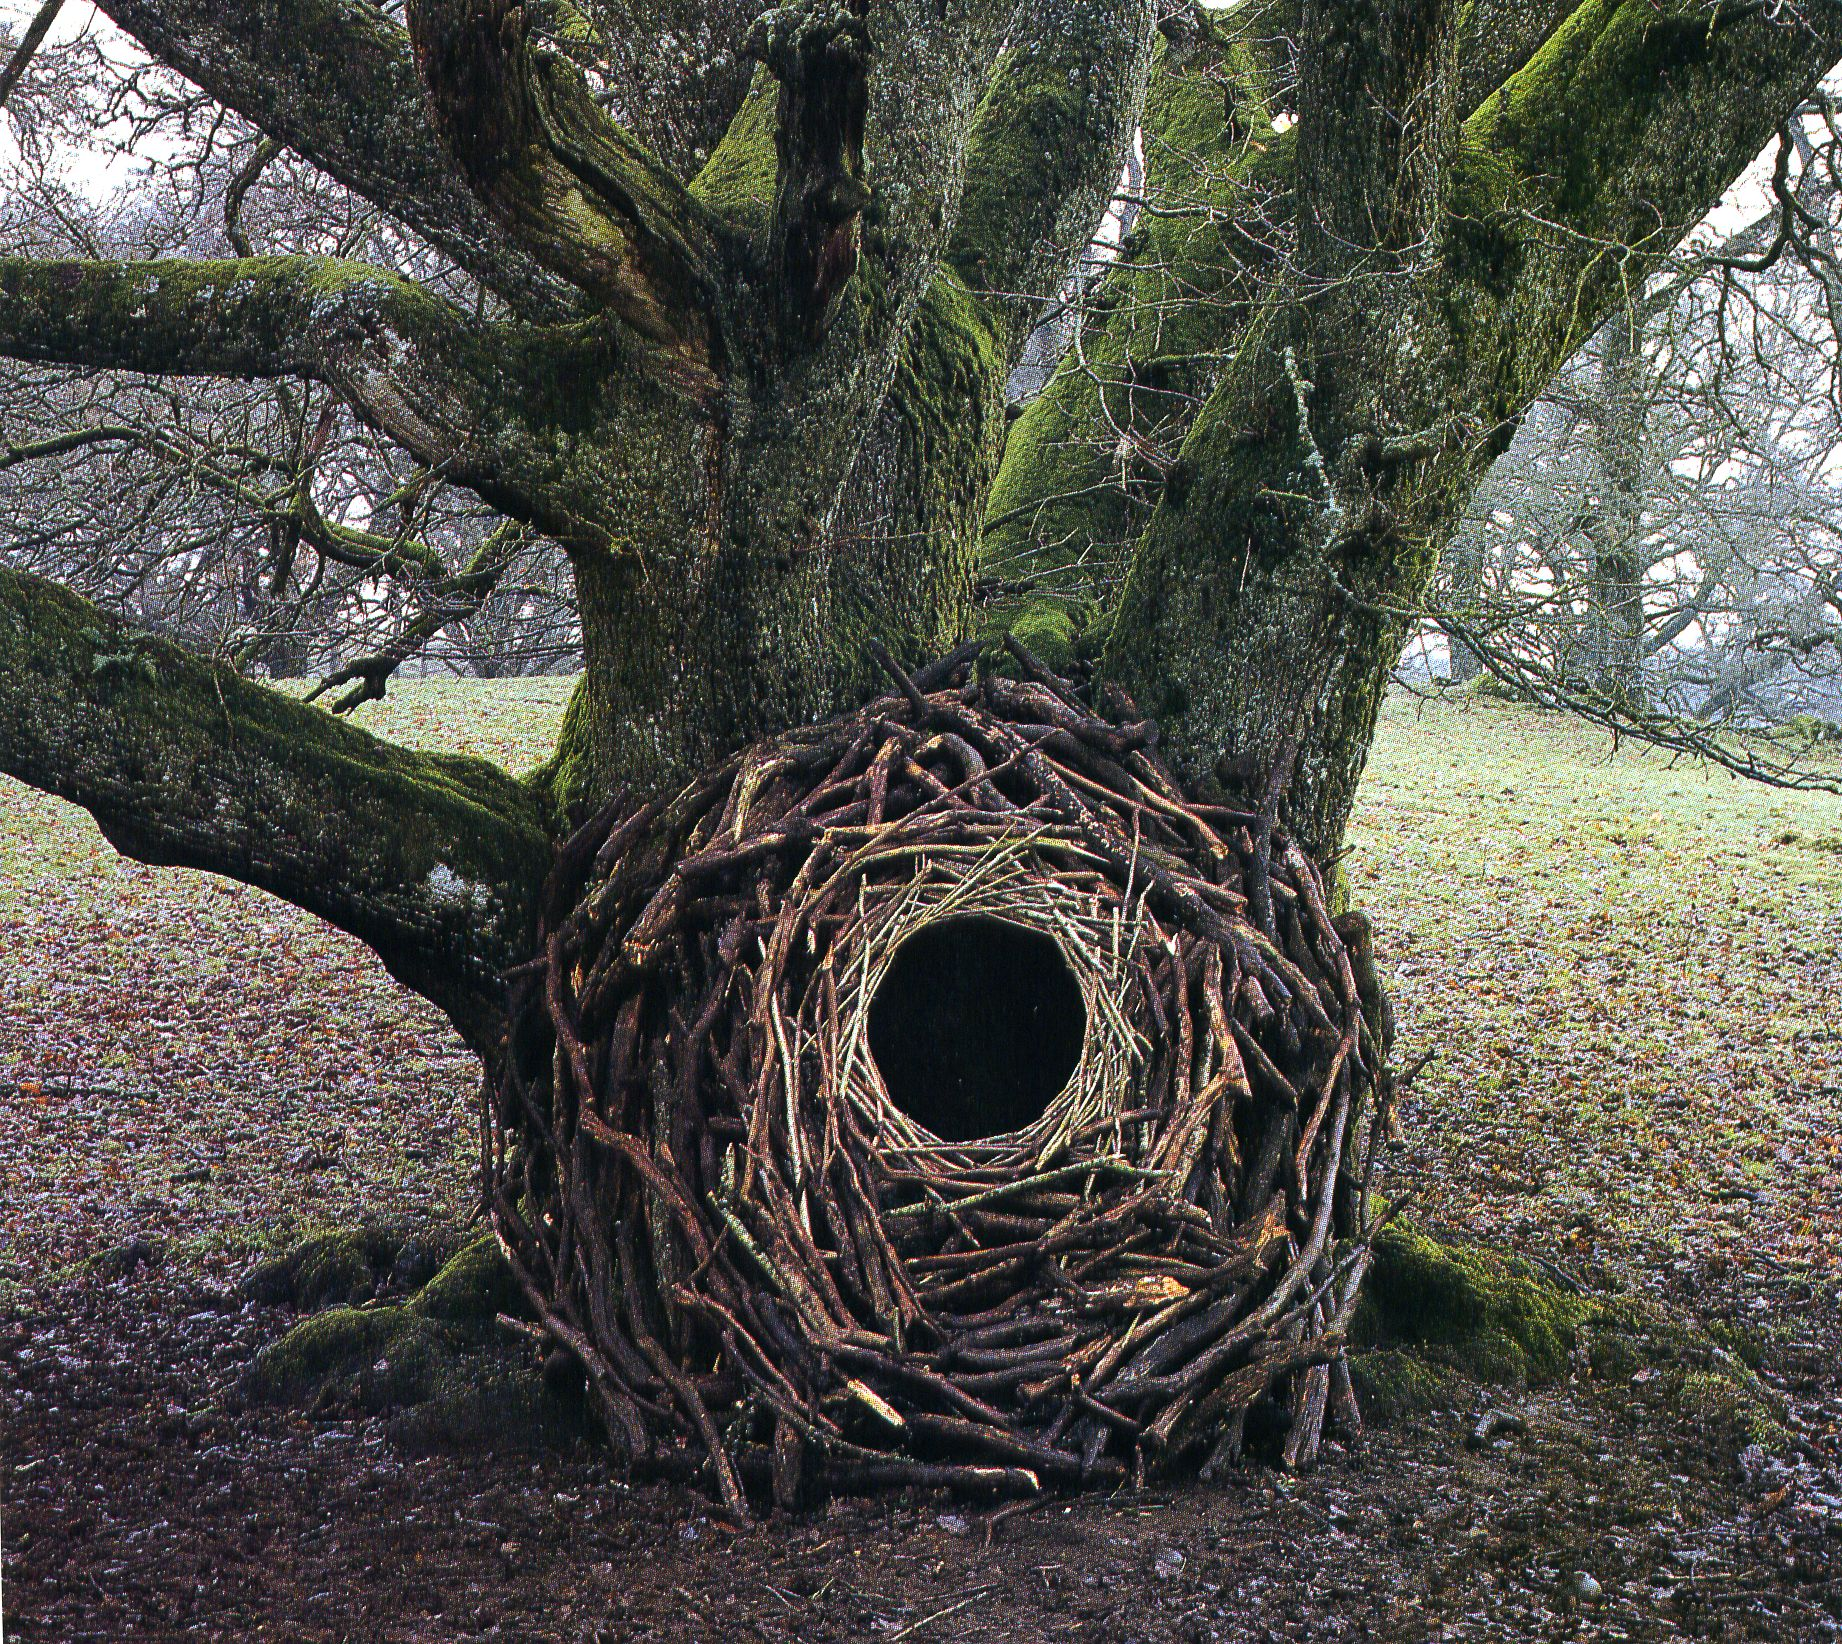 land art Andy Goldsworthy 10 Les oeuvres dans la nature dAndy Goldsworthy